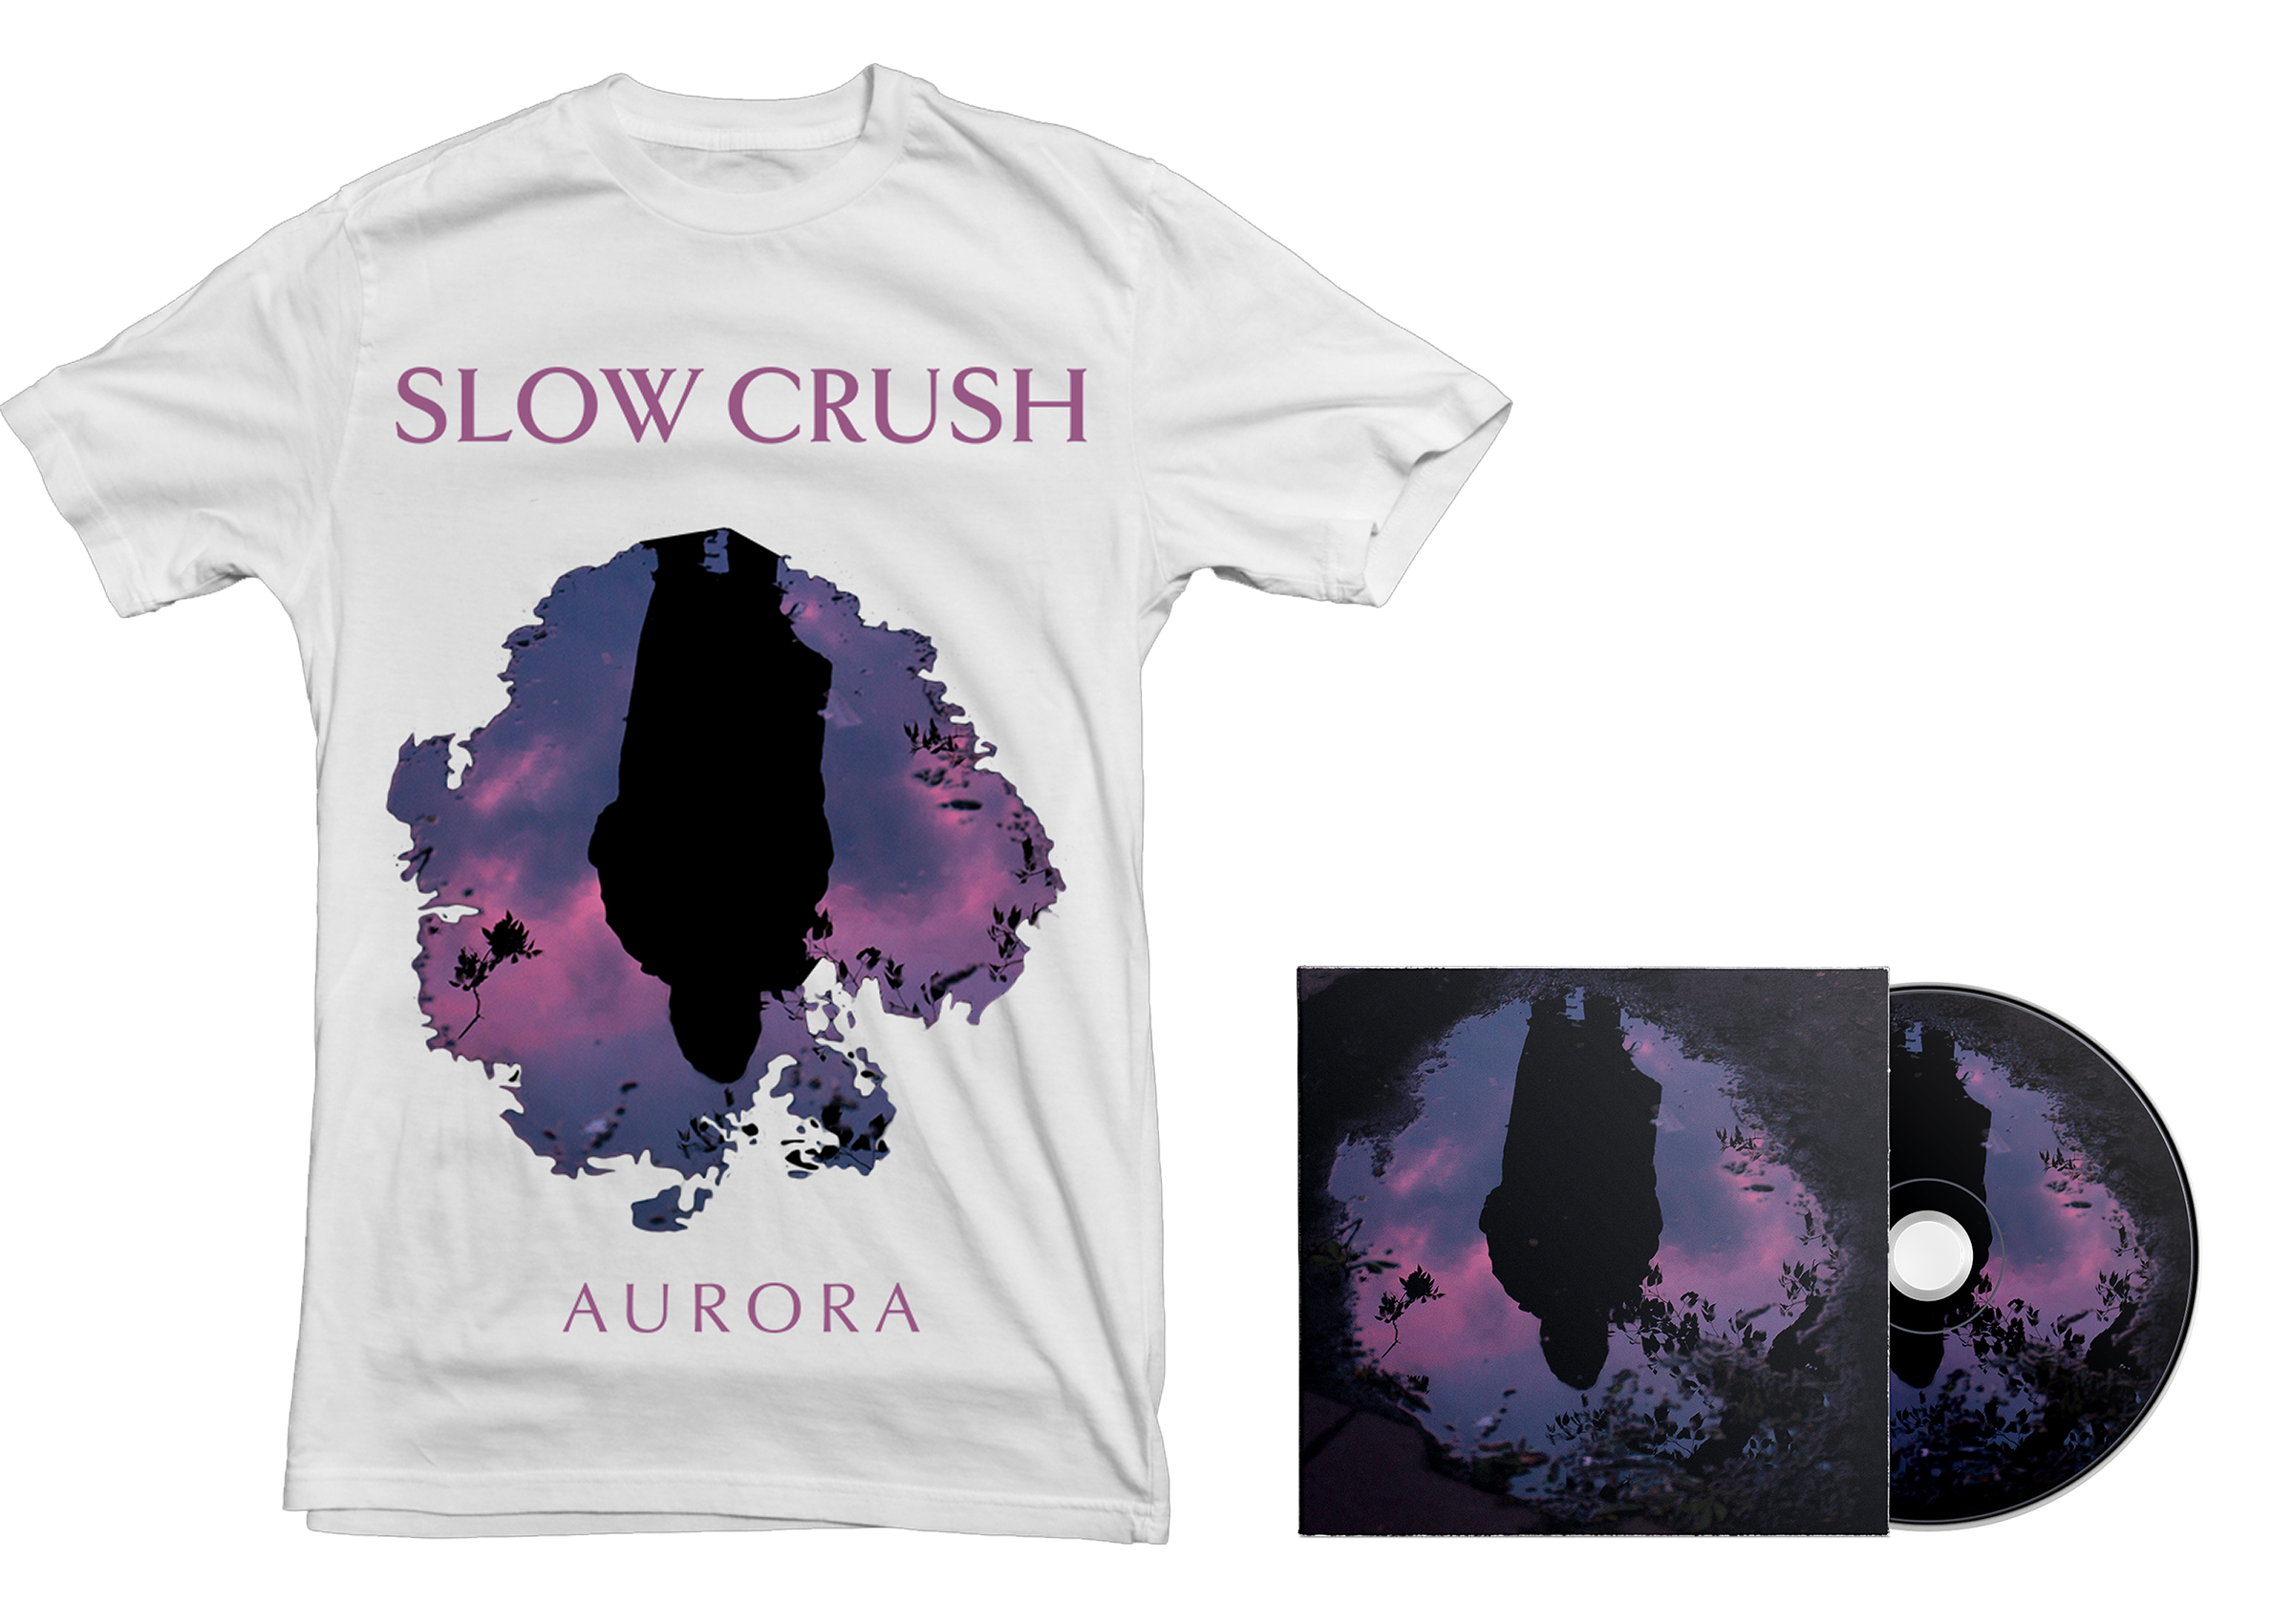 Slow Crush - Aurora CD + shirt PREORDER